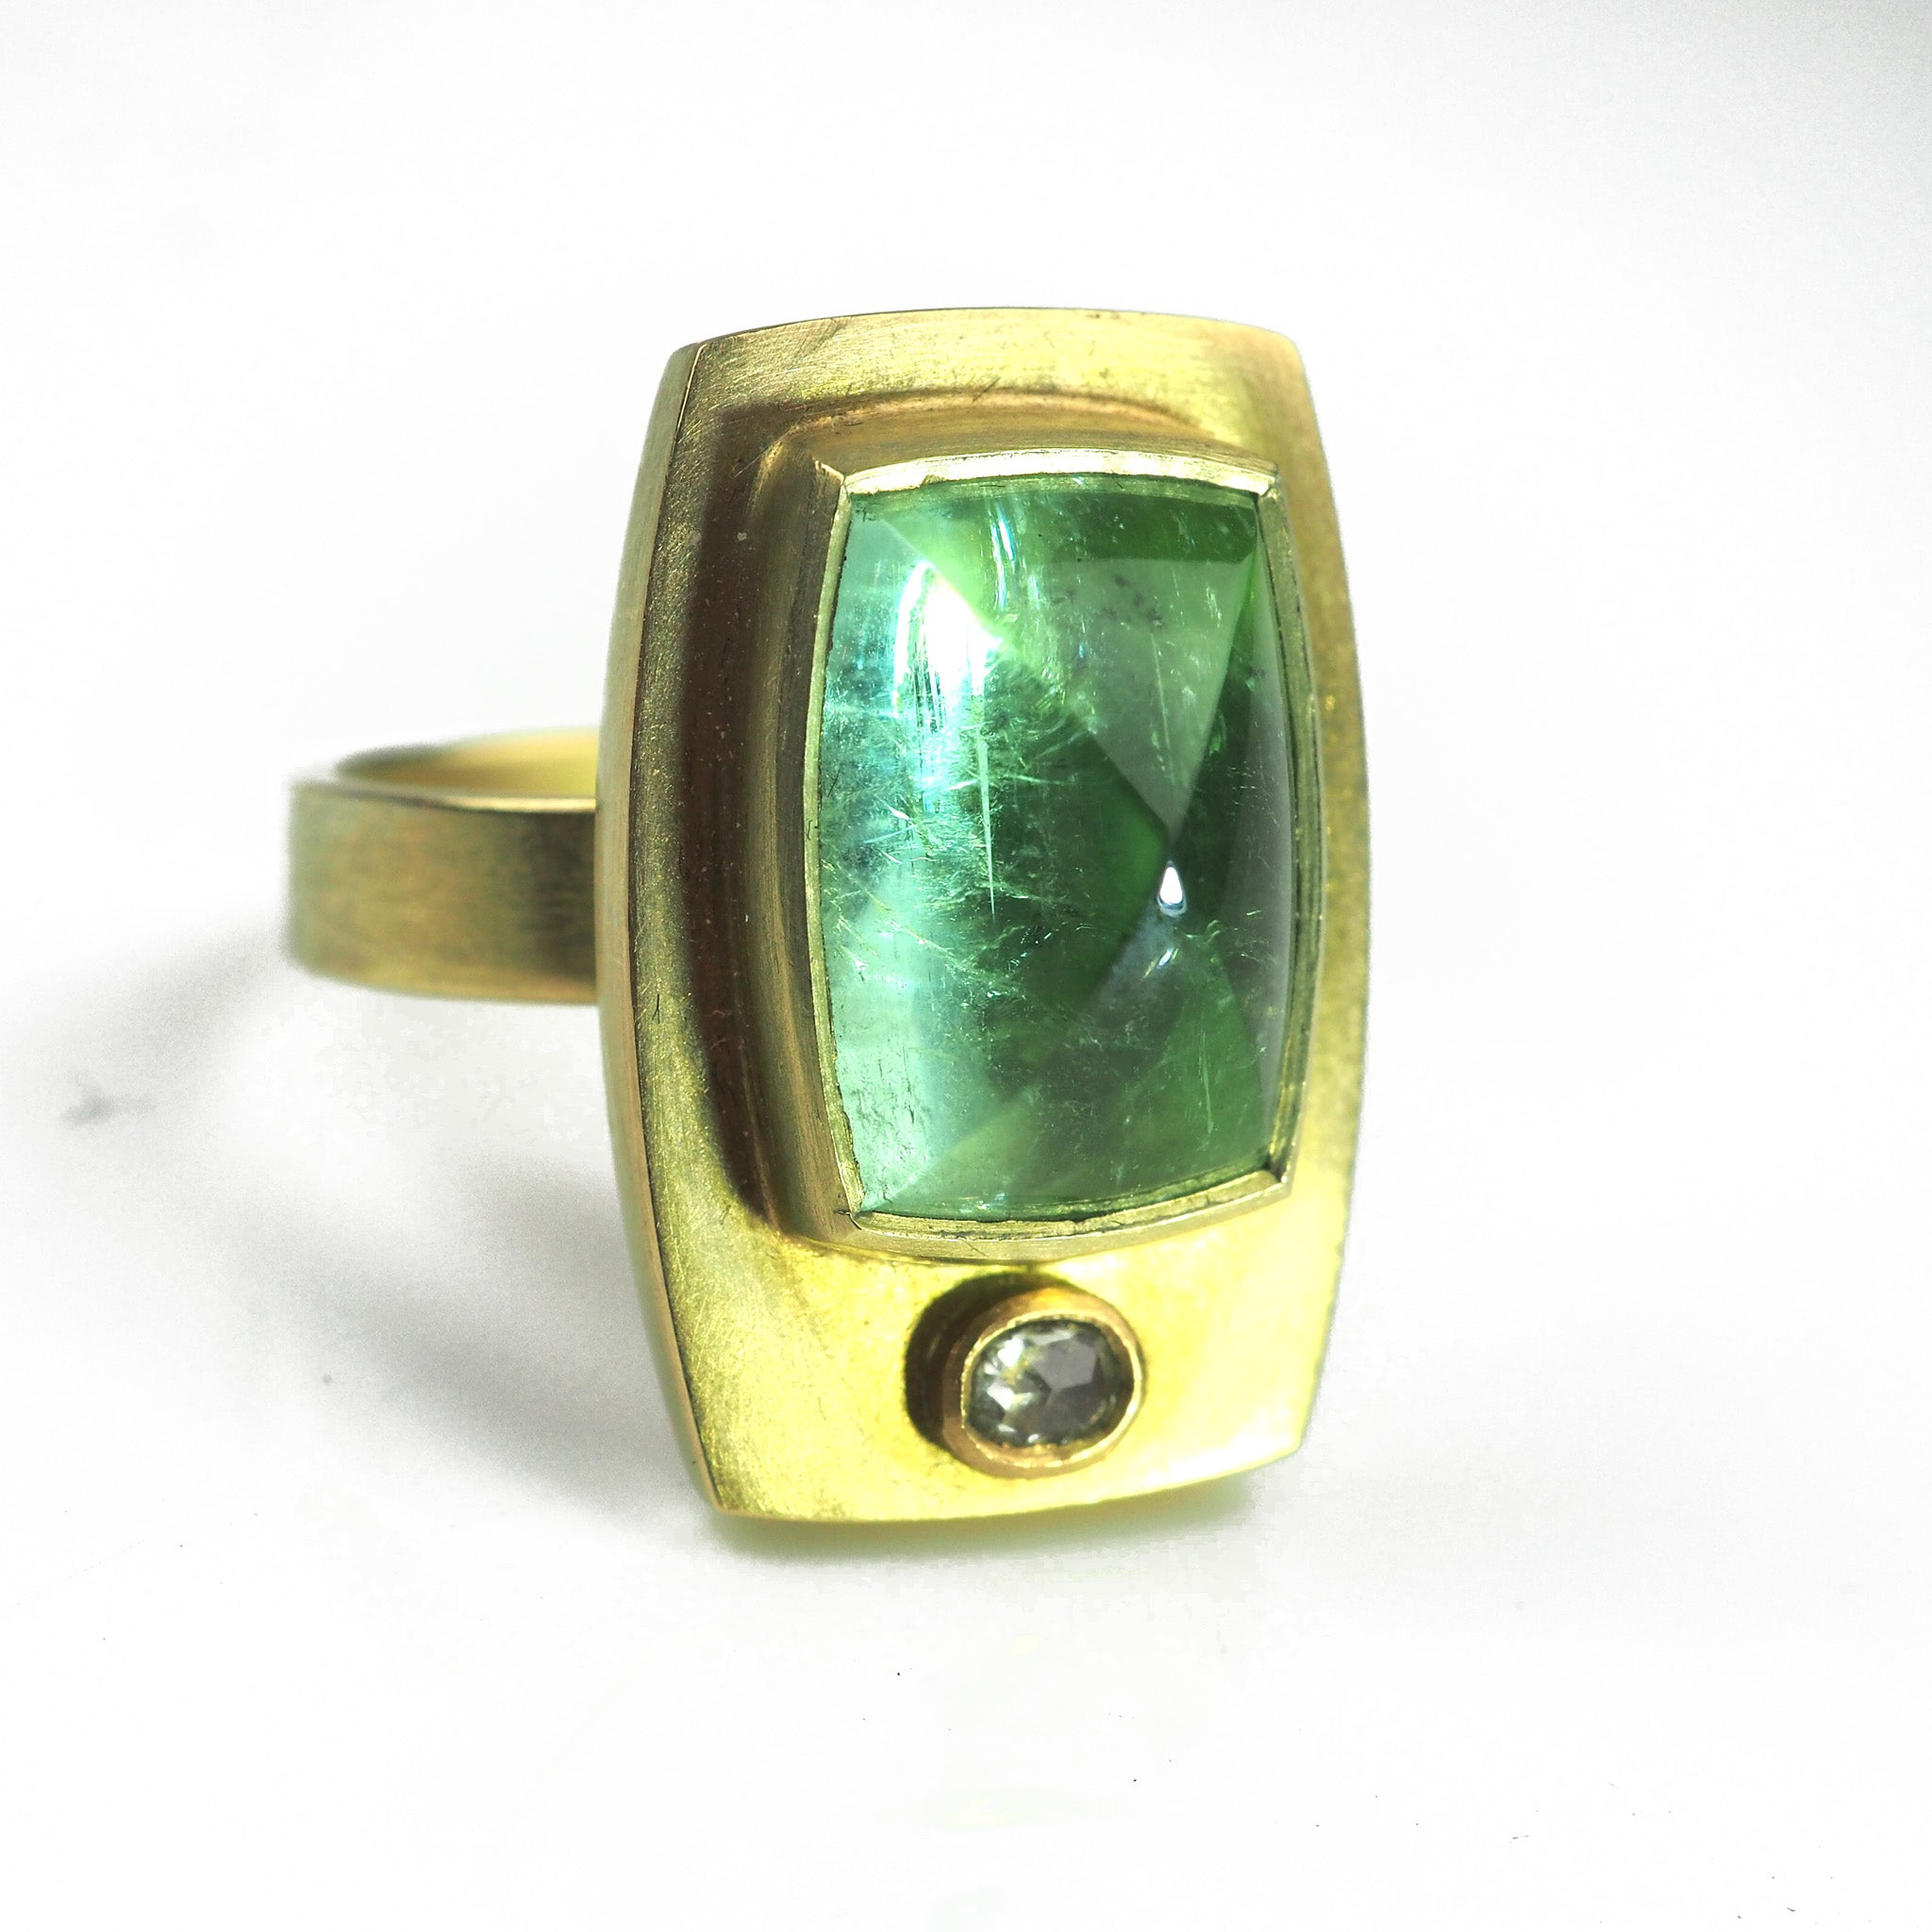 Mannheim, Catherine – Gold Ring With Green Tourmaline | Catherine Mannheim | Primavera Gallery